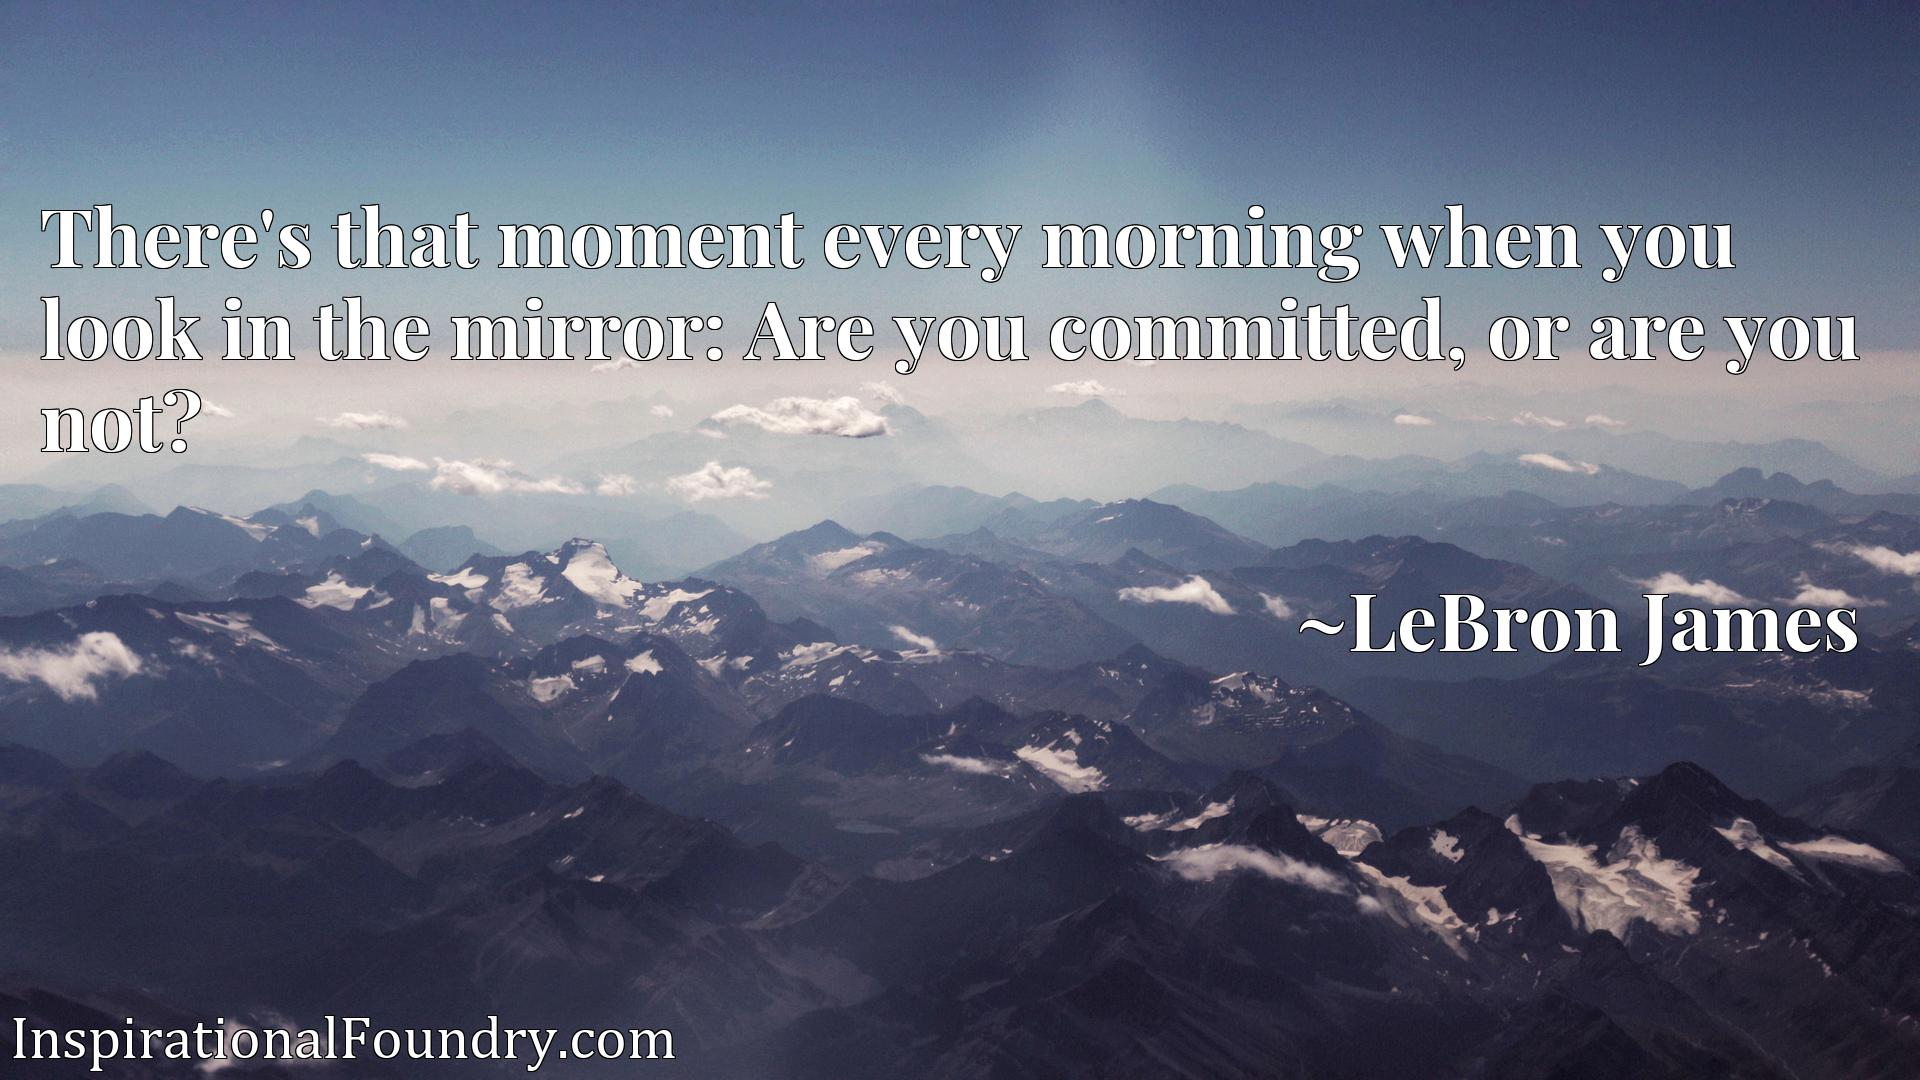 There's that moment every morning when you look in the mirror: Are you committed, or are you not?